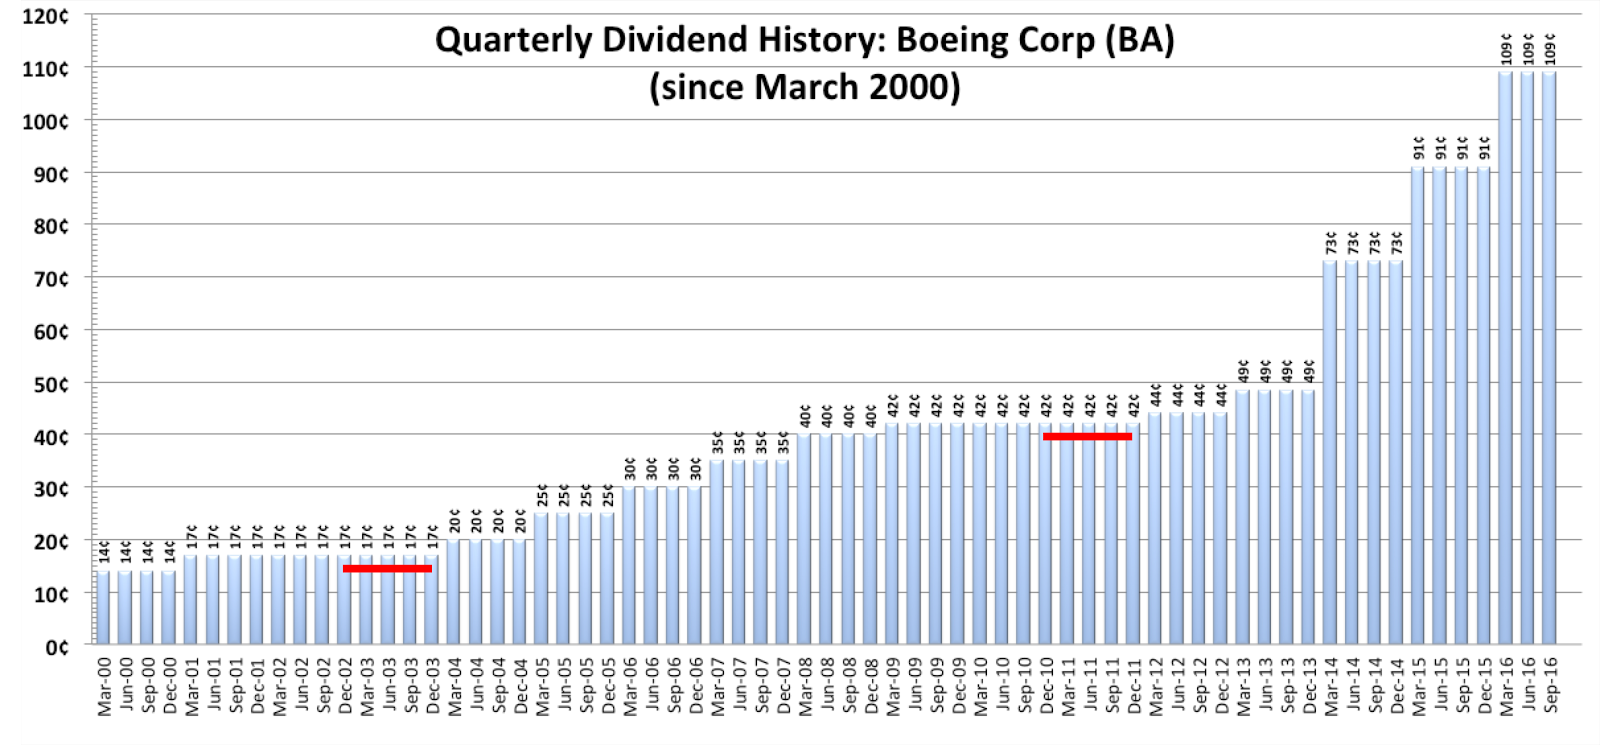 Stock analysis the boeing company the boeing company nyseba ba has paid 158 quarterly dividends since initiating dividend payments in 1977 here is a chart showing the quarterly dividends paid since february 2000 buycottarizona Image collections